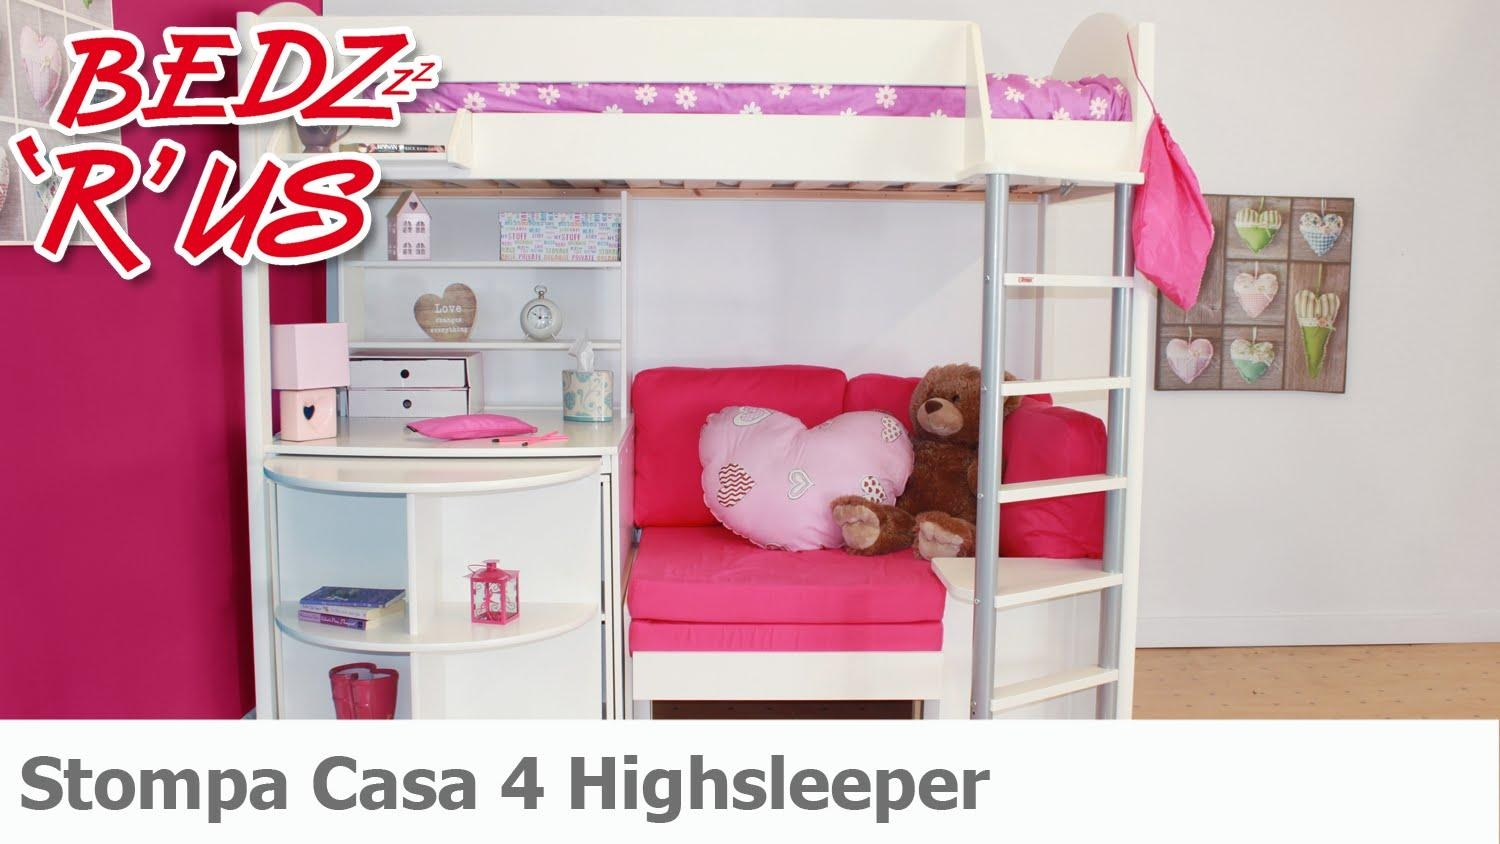 Stompa Casa 4 Highsleeper Bed – Bedzrus – Youtube Within High Sleeper Bed With Sofa (View 18 of 20)